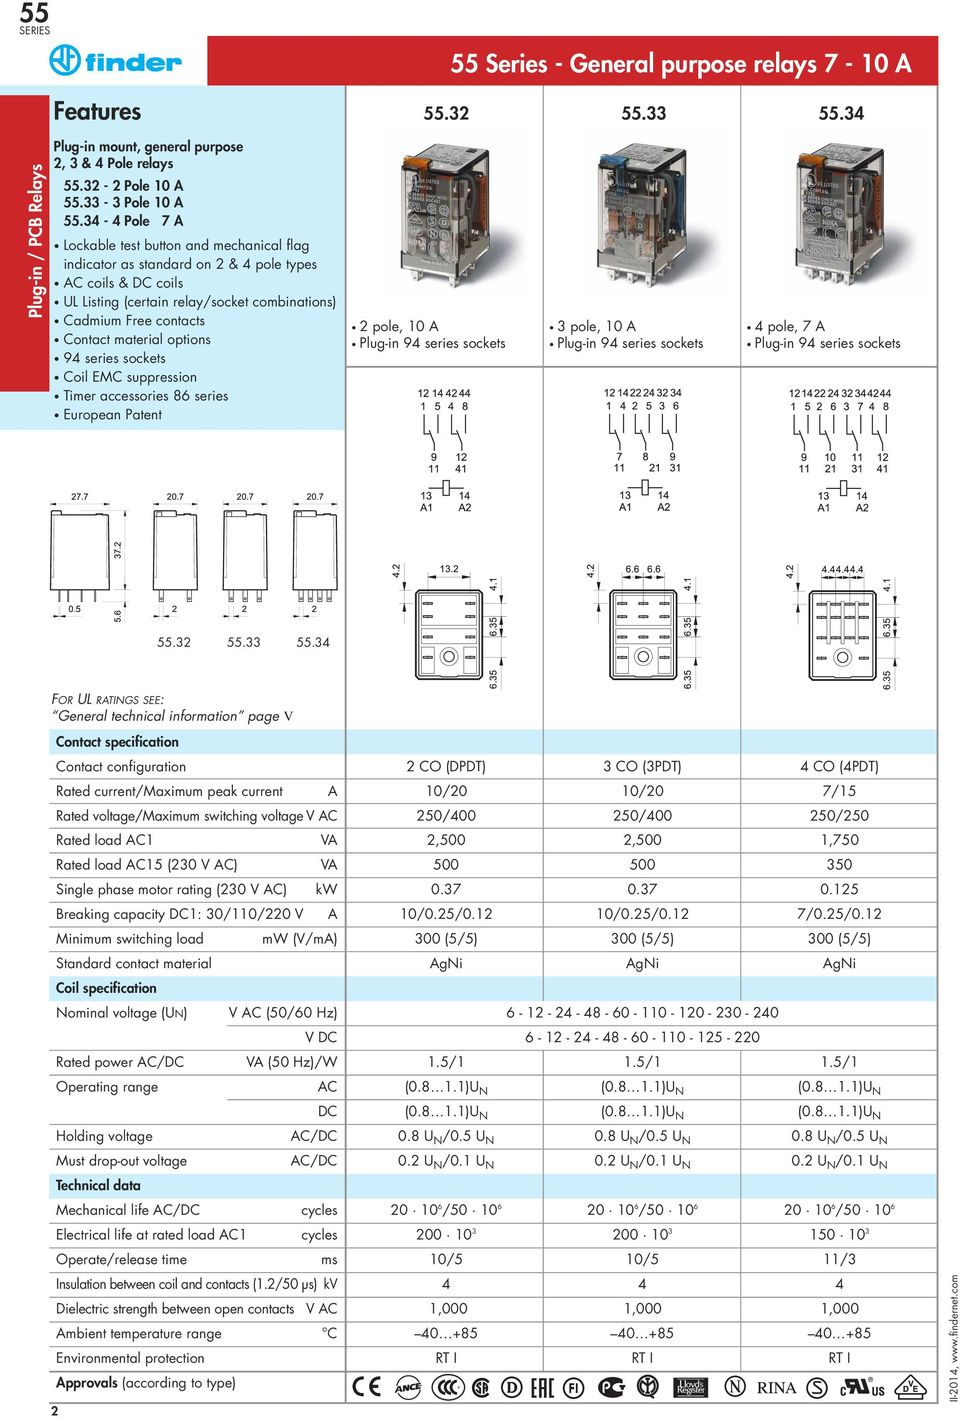 material options 94 series sockets Coil EMC suppression Timer accessories 86 series European Patent 2 pole, 10 A Plug-in 94 series sockets 3 pole, 10 A Plug-in 94 series sockets 4 pole, 7 A Plug-in